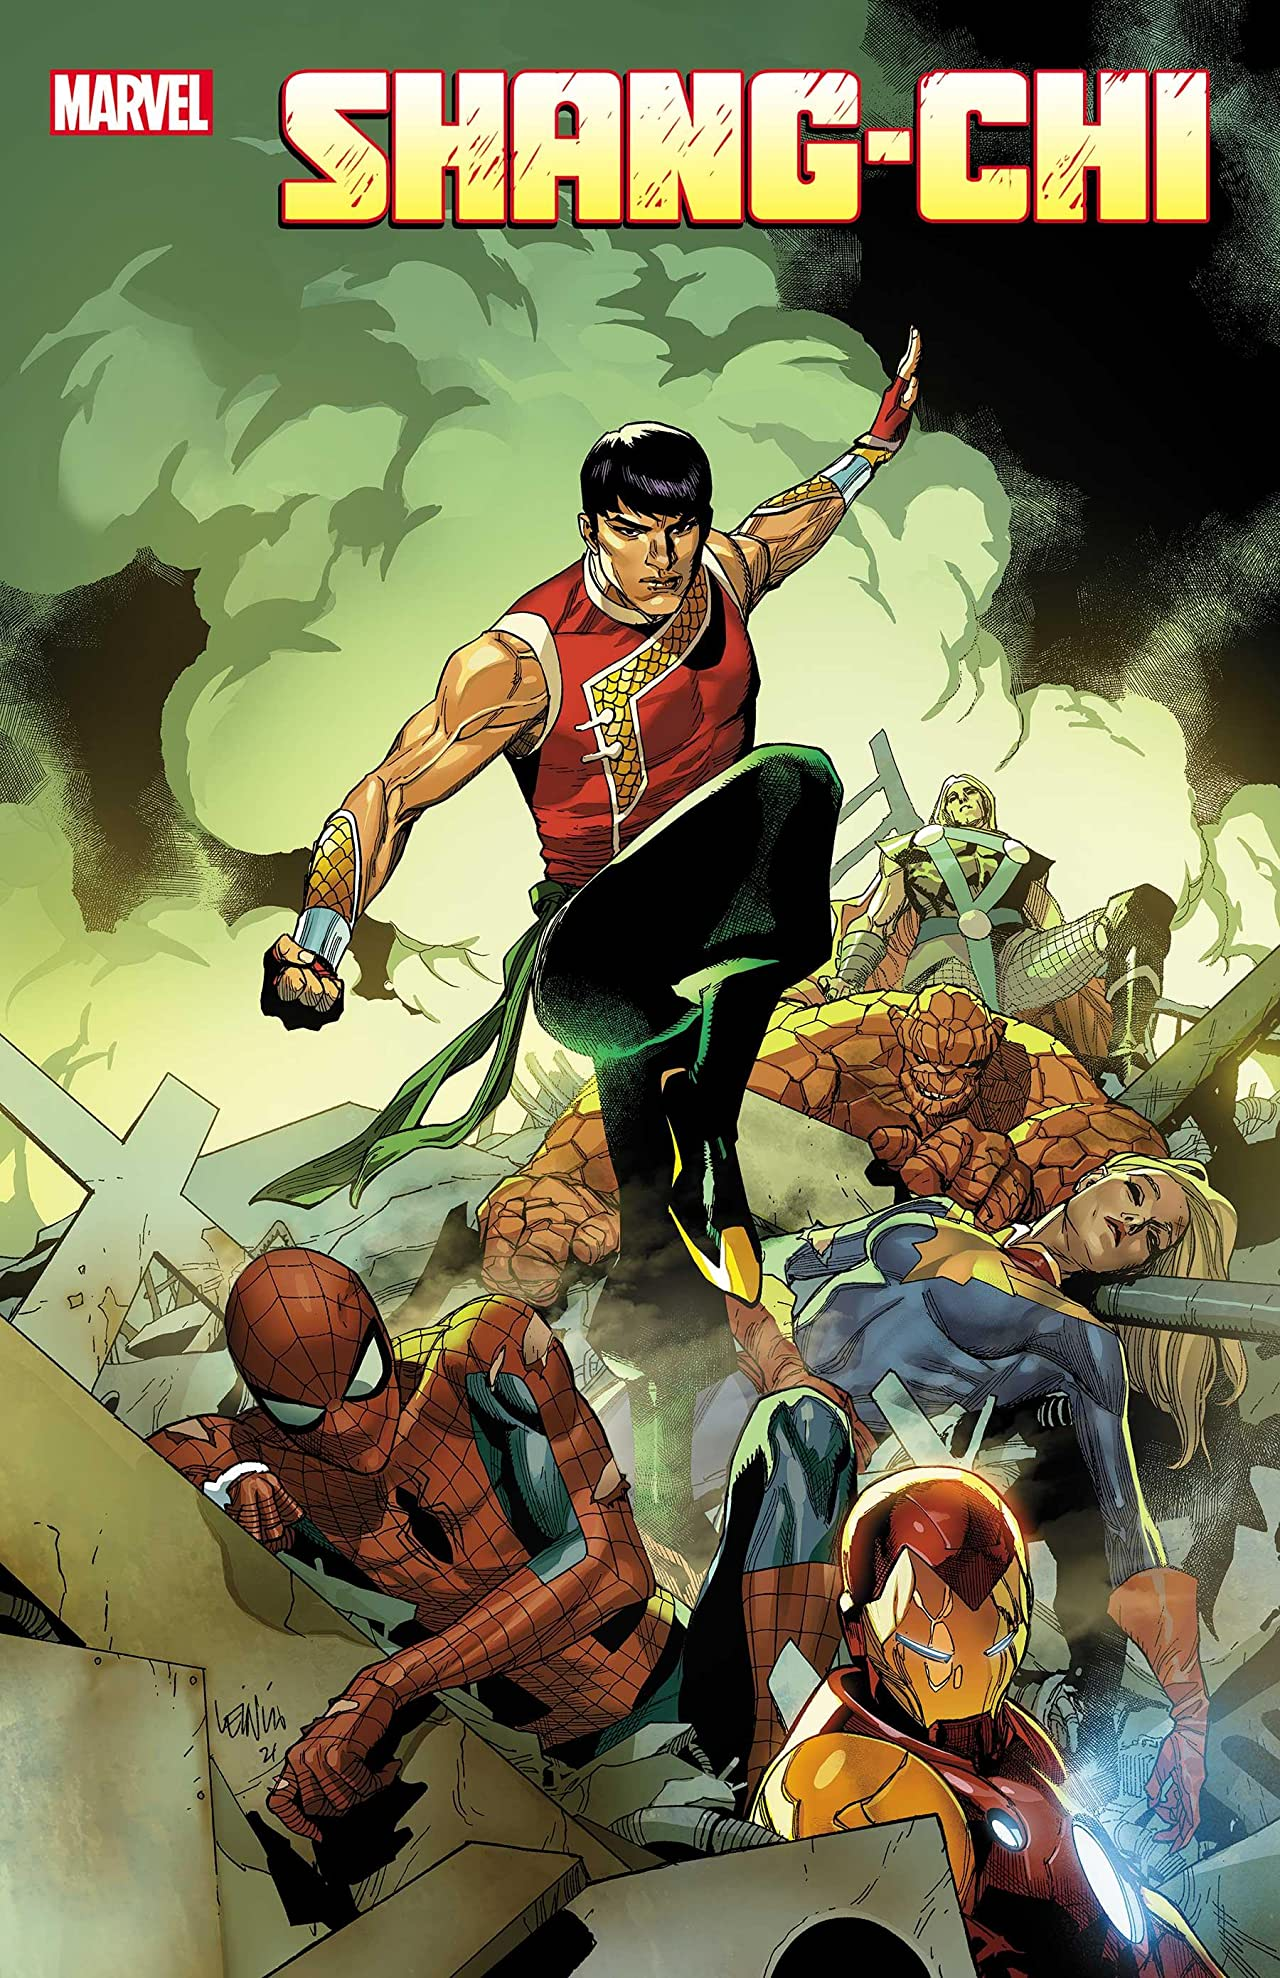 Marvel Preview: Shang-Chi #1